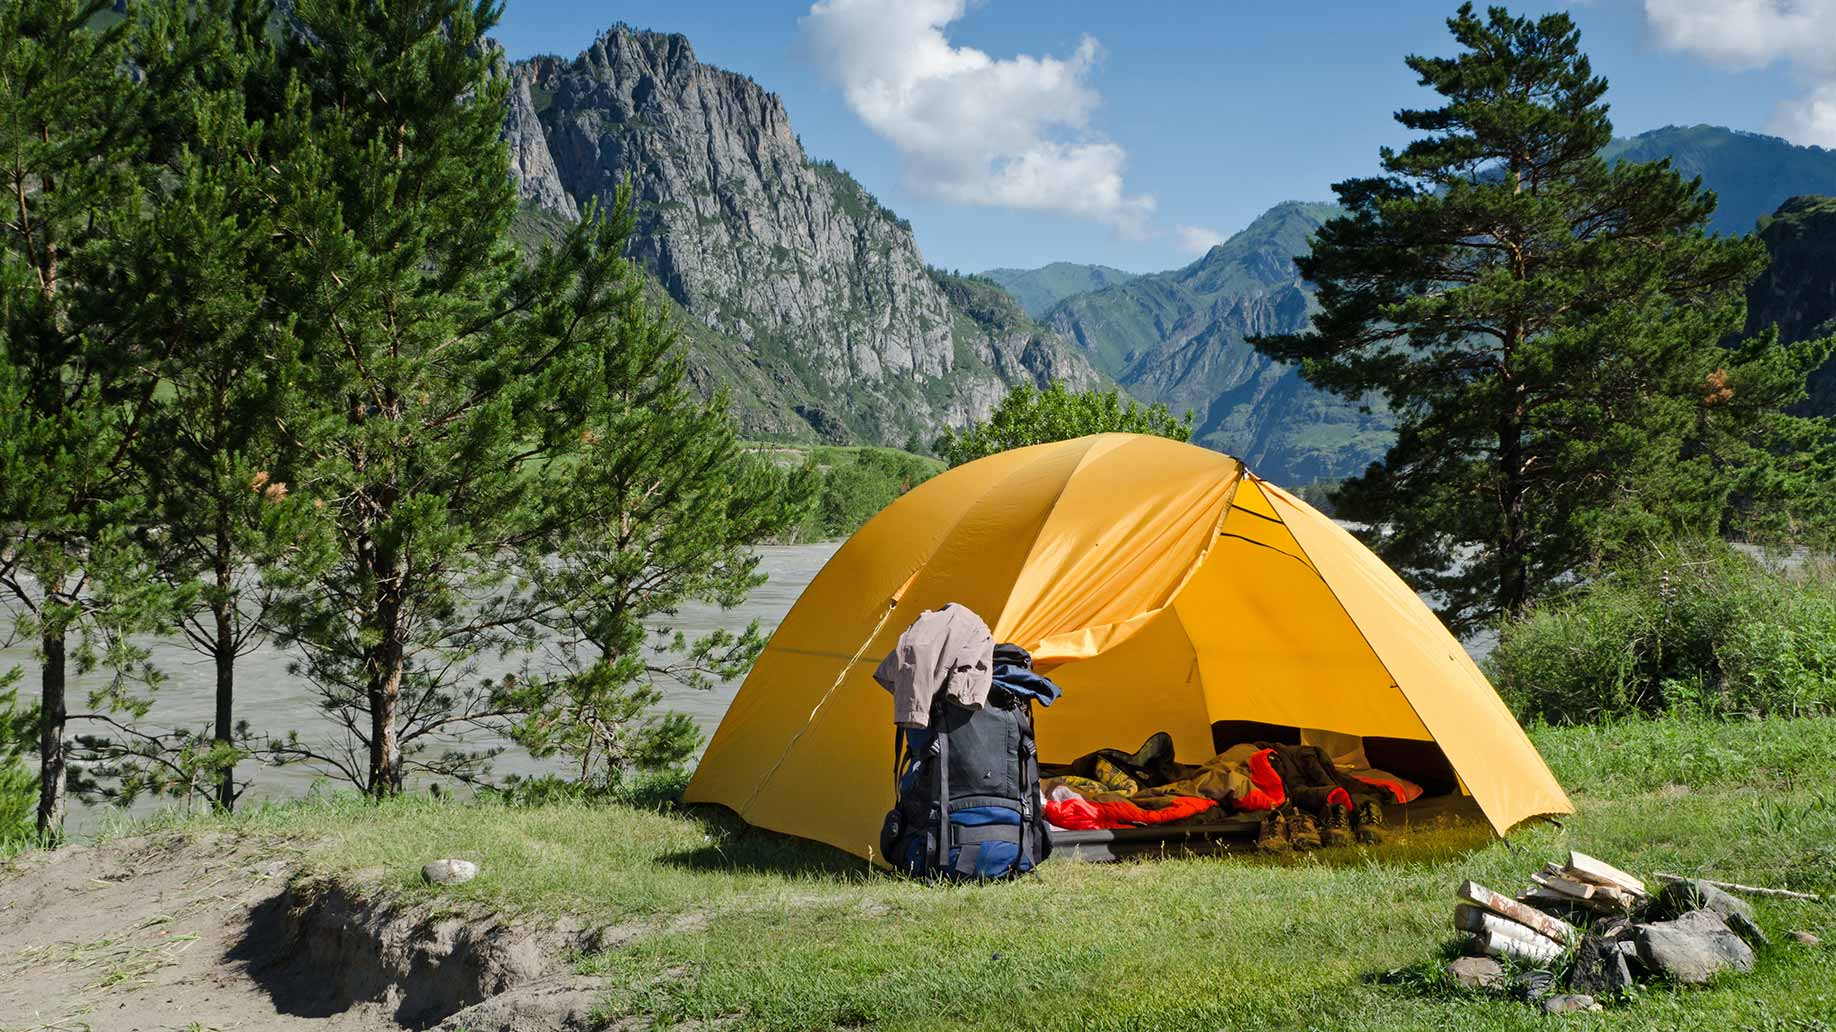 camping trip tent mountains